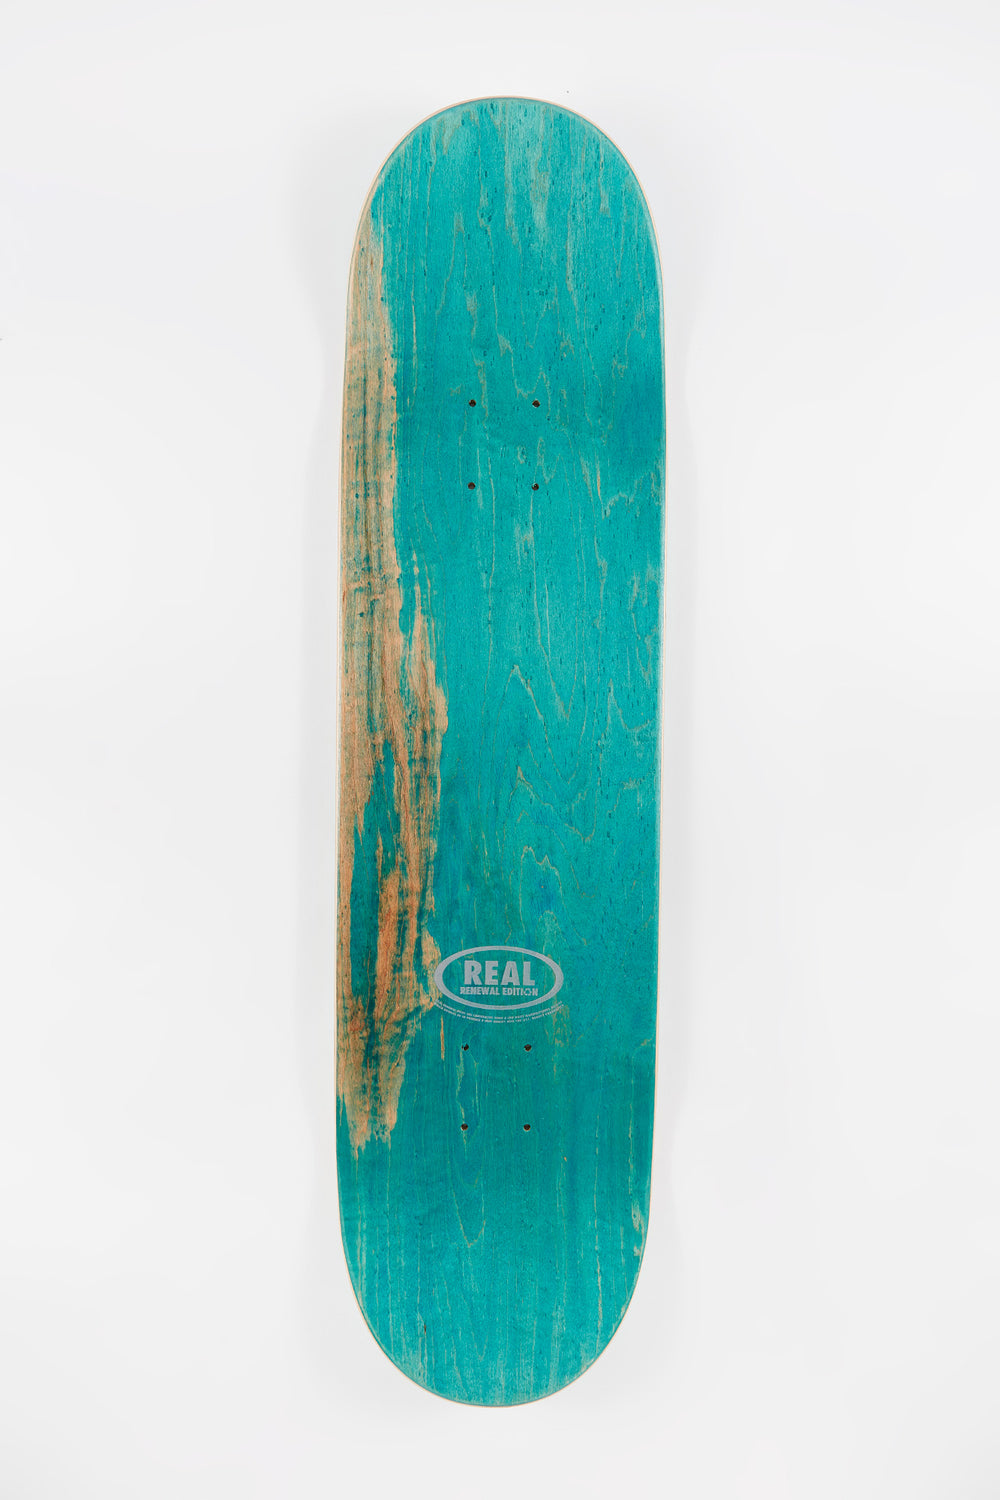 Planche Flowers Renewal Real 8.25